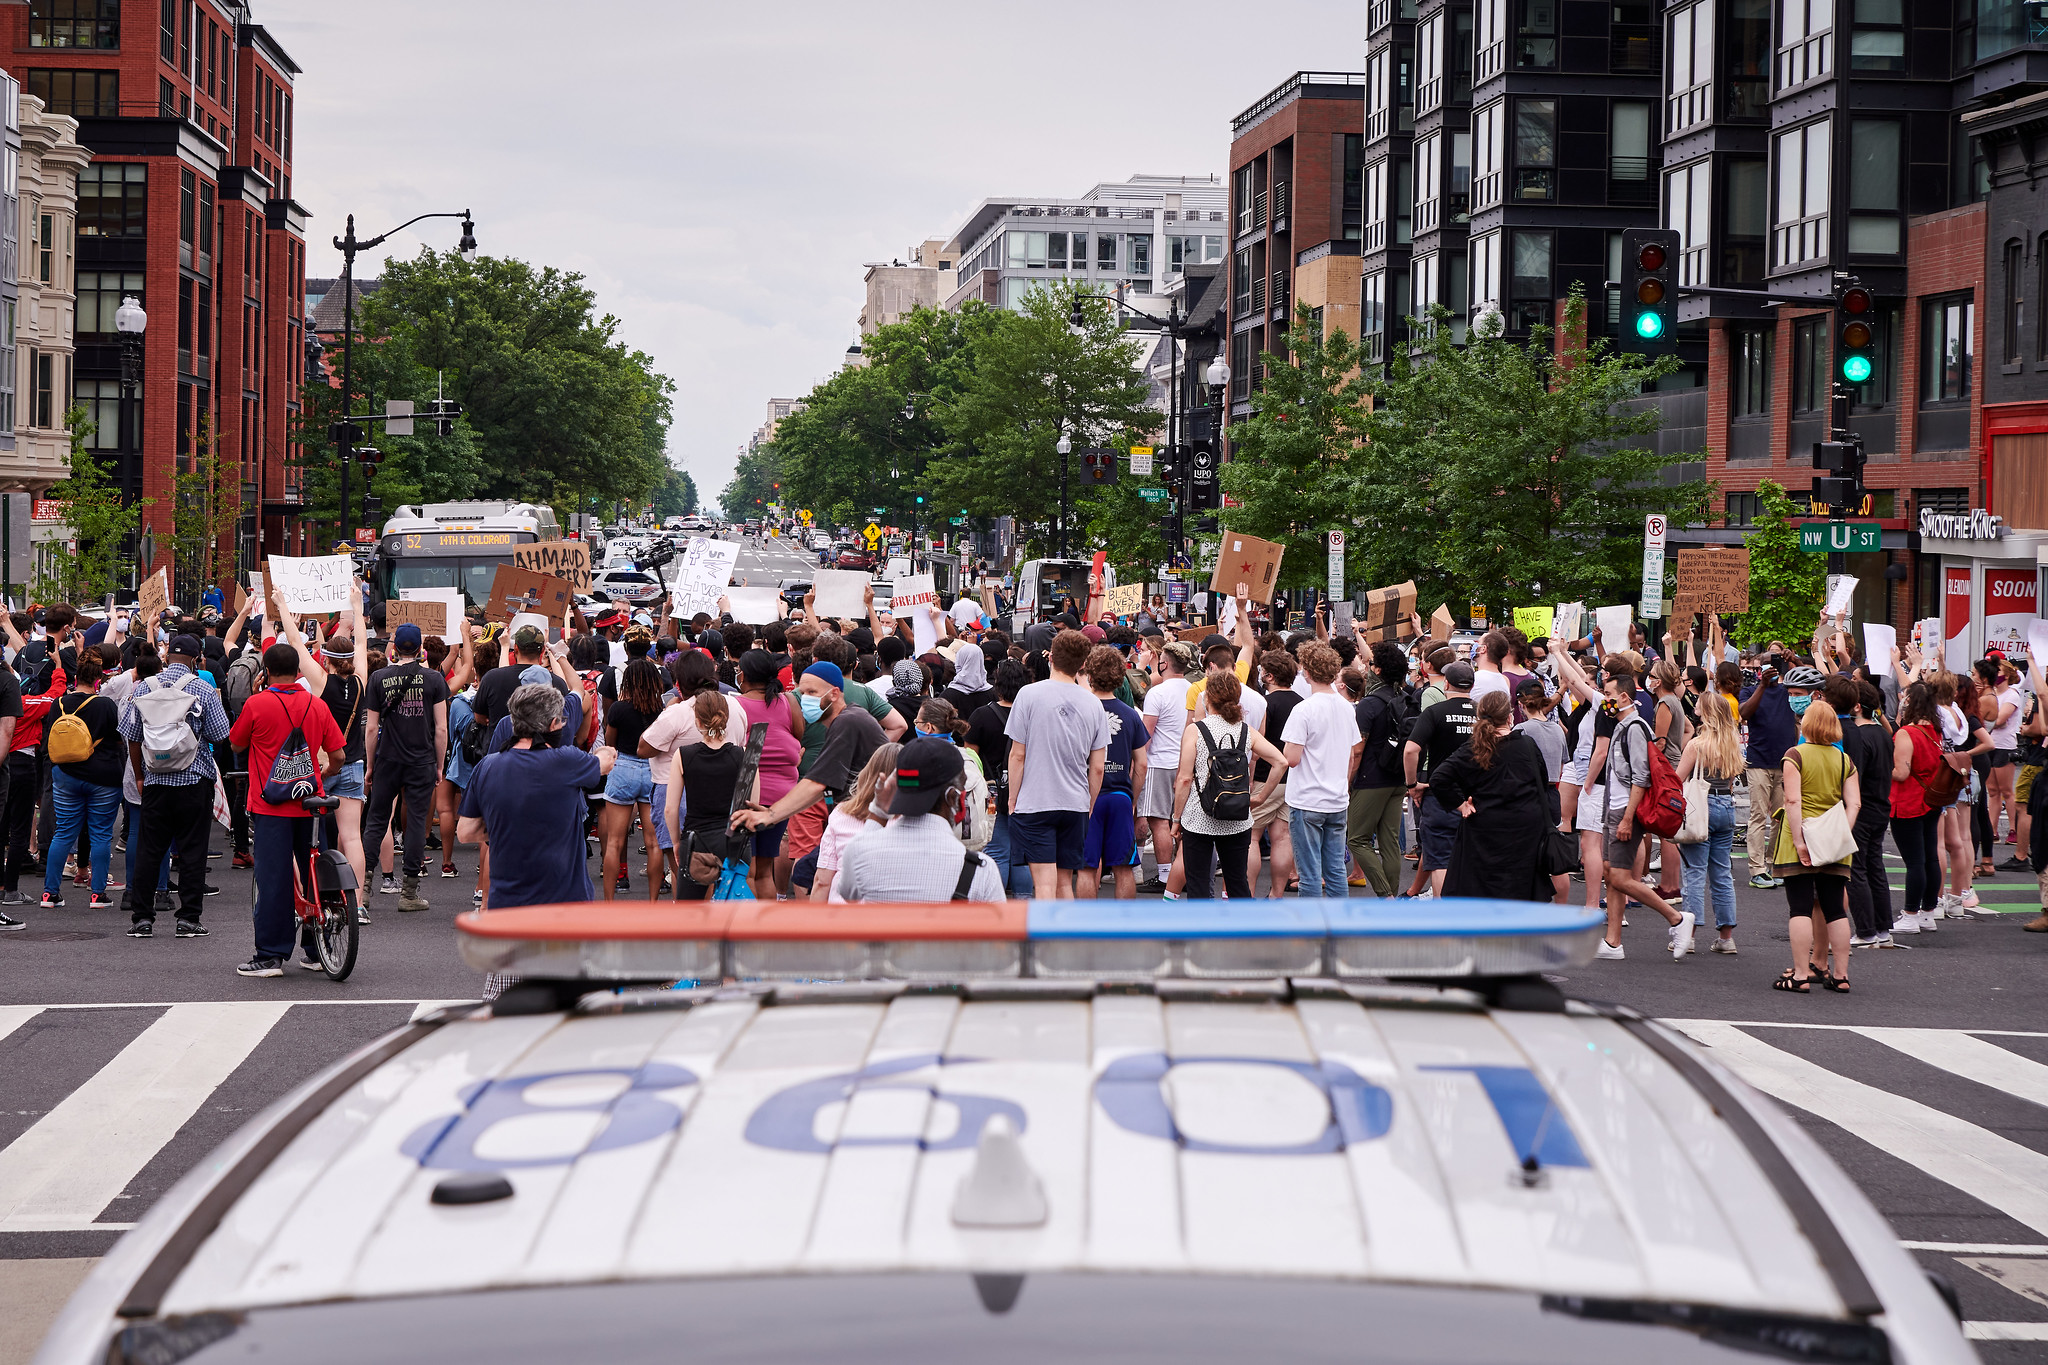 Demonstrators protest the police murder of George Floyd in Washington, D.C.